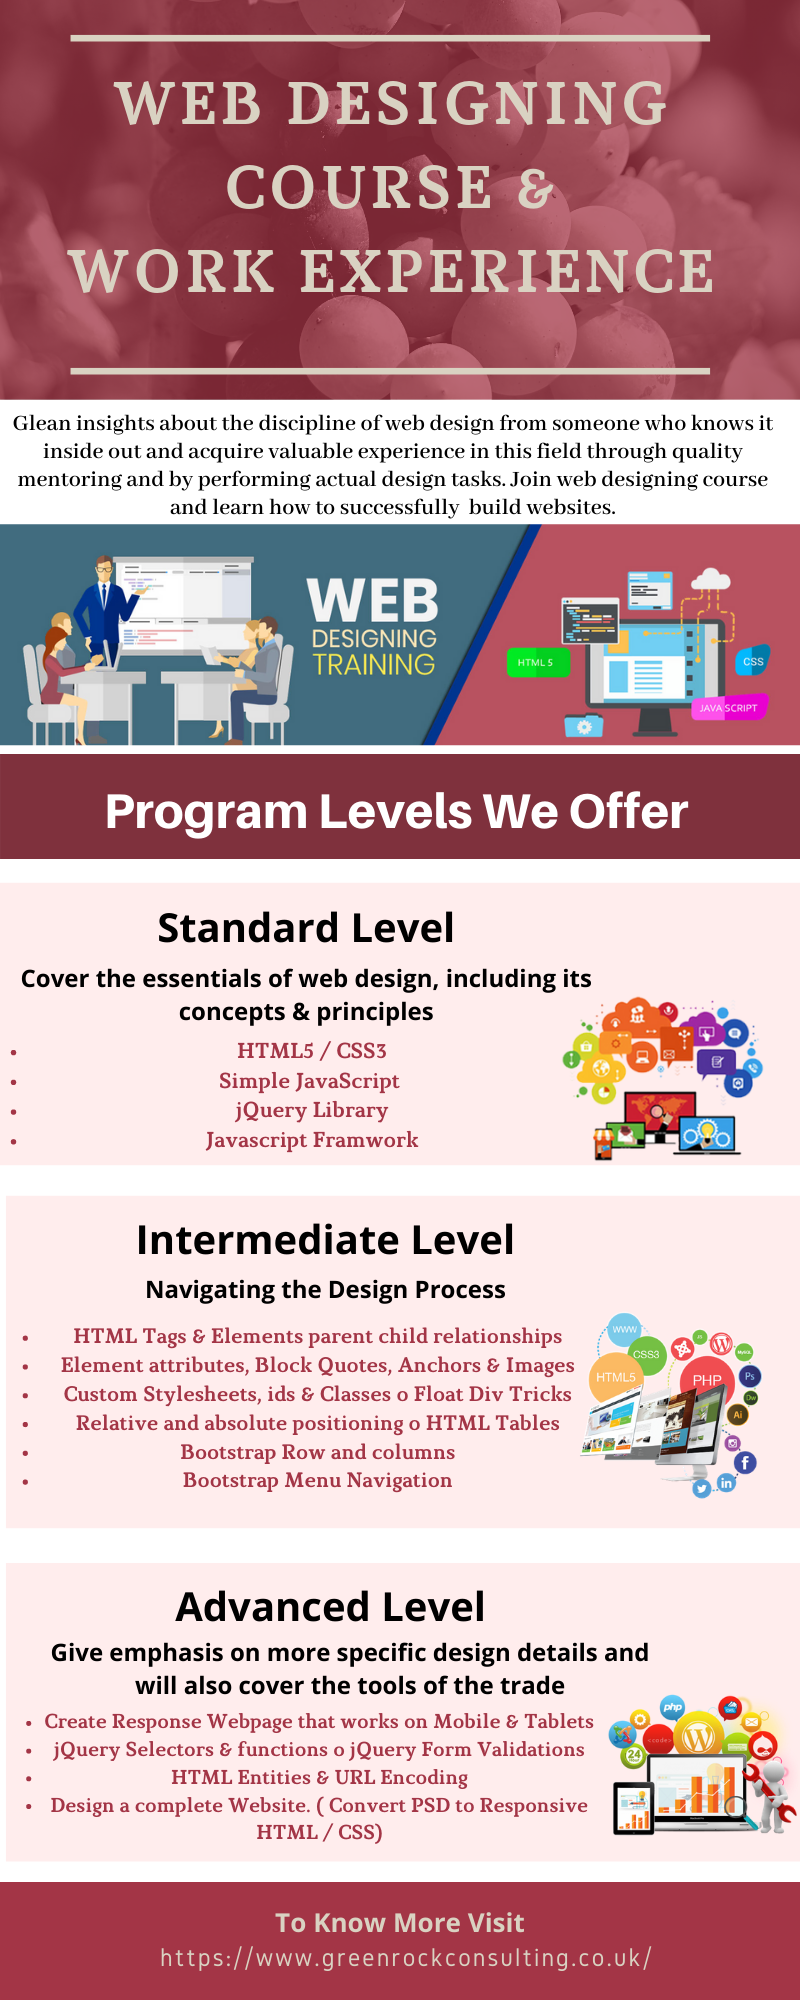 Join Web Designing Course And Learn How To Build Website By Green Rock Consulting Medium